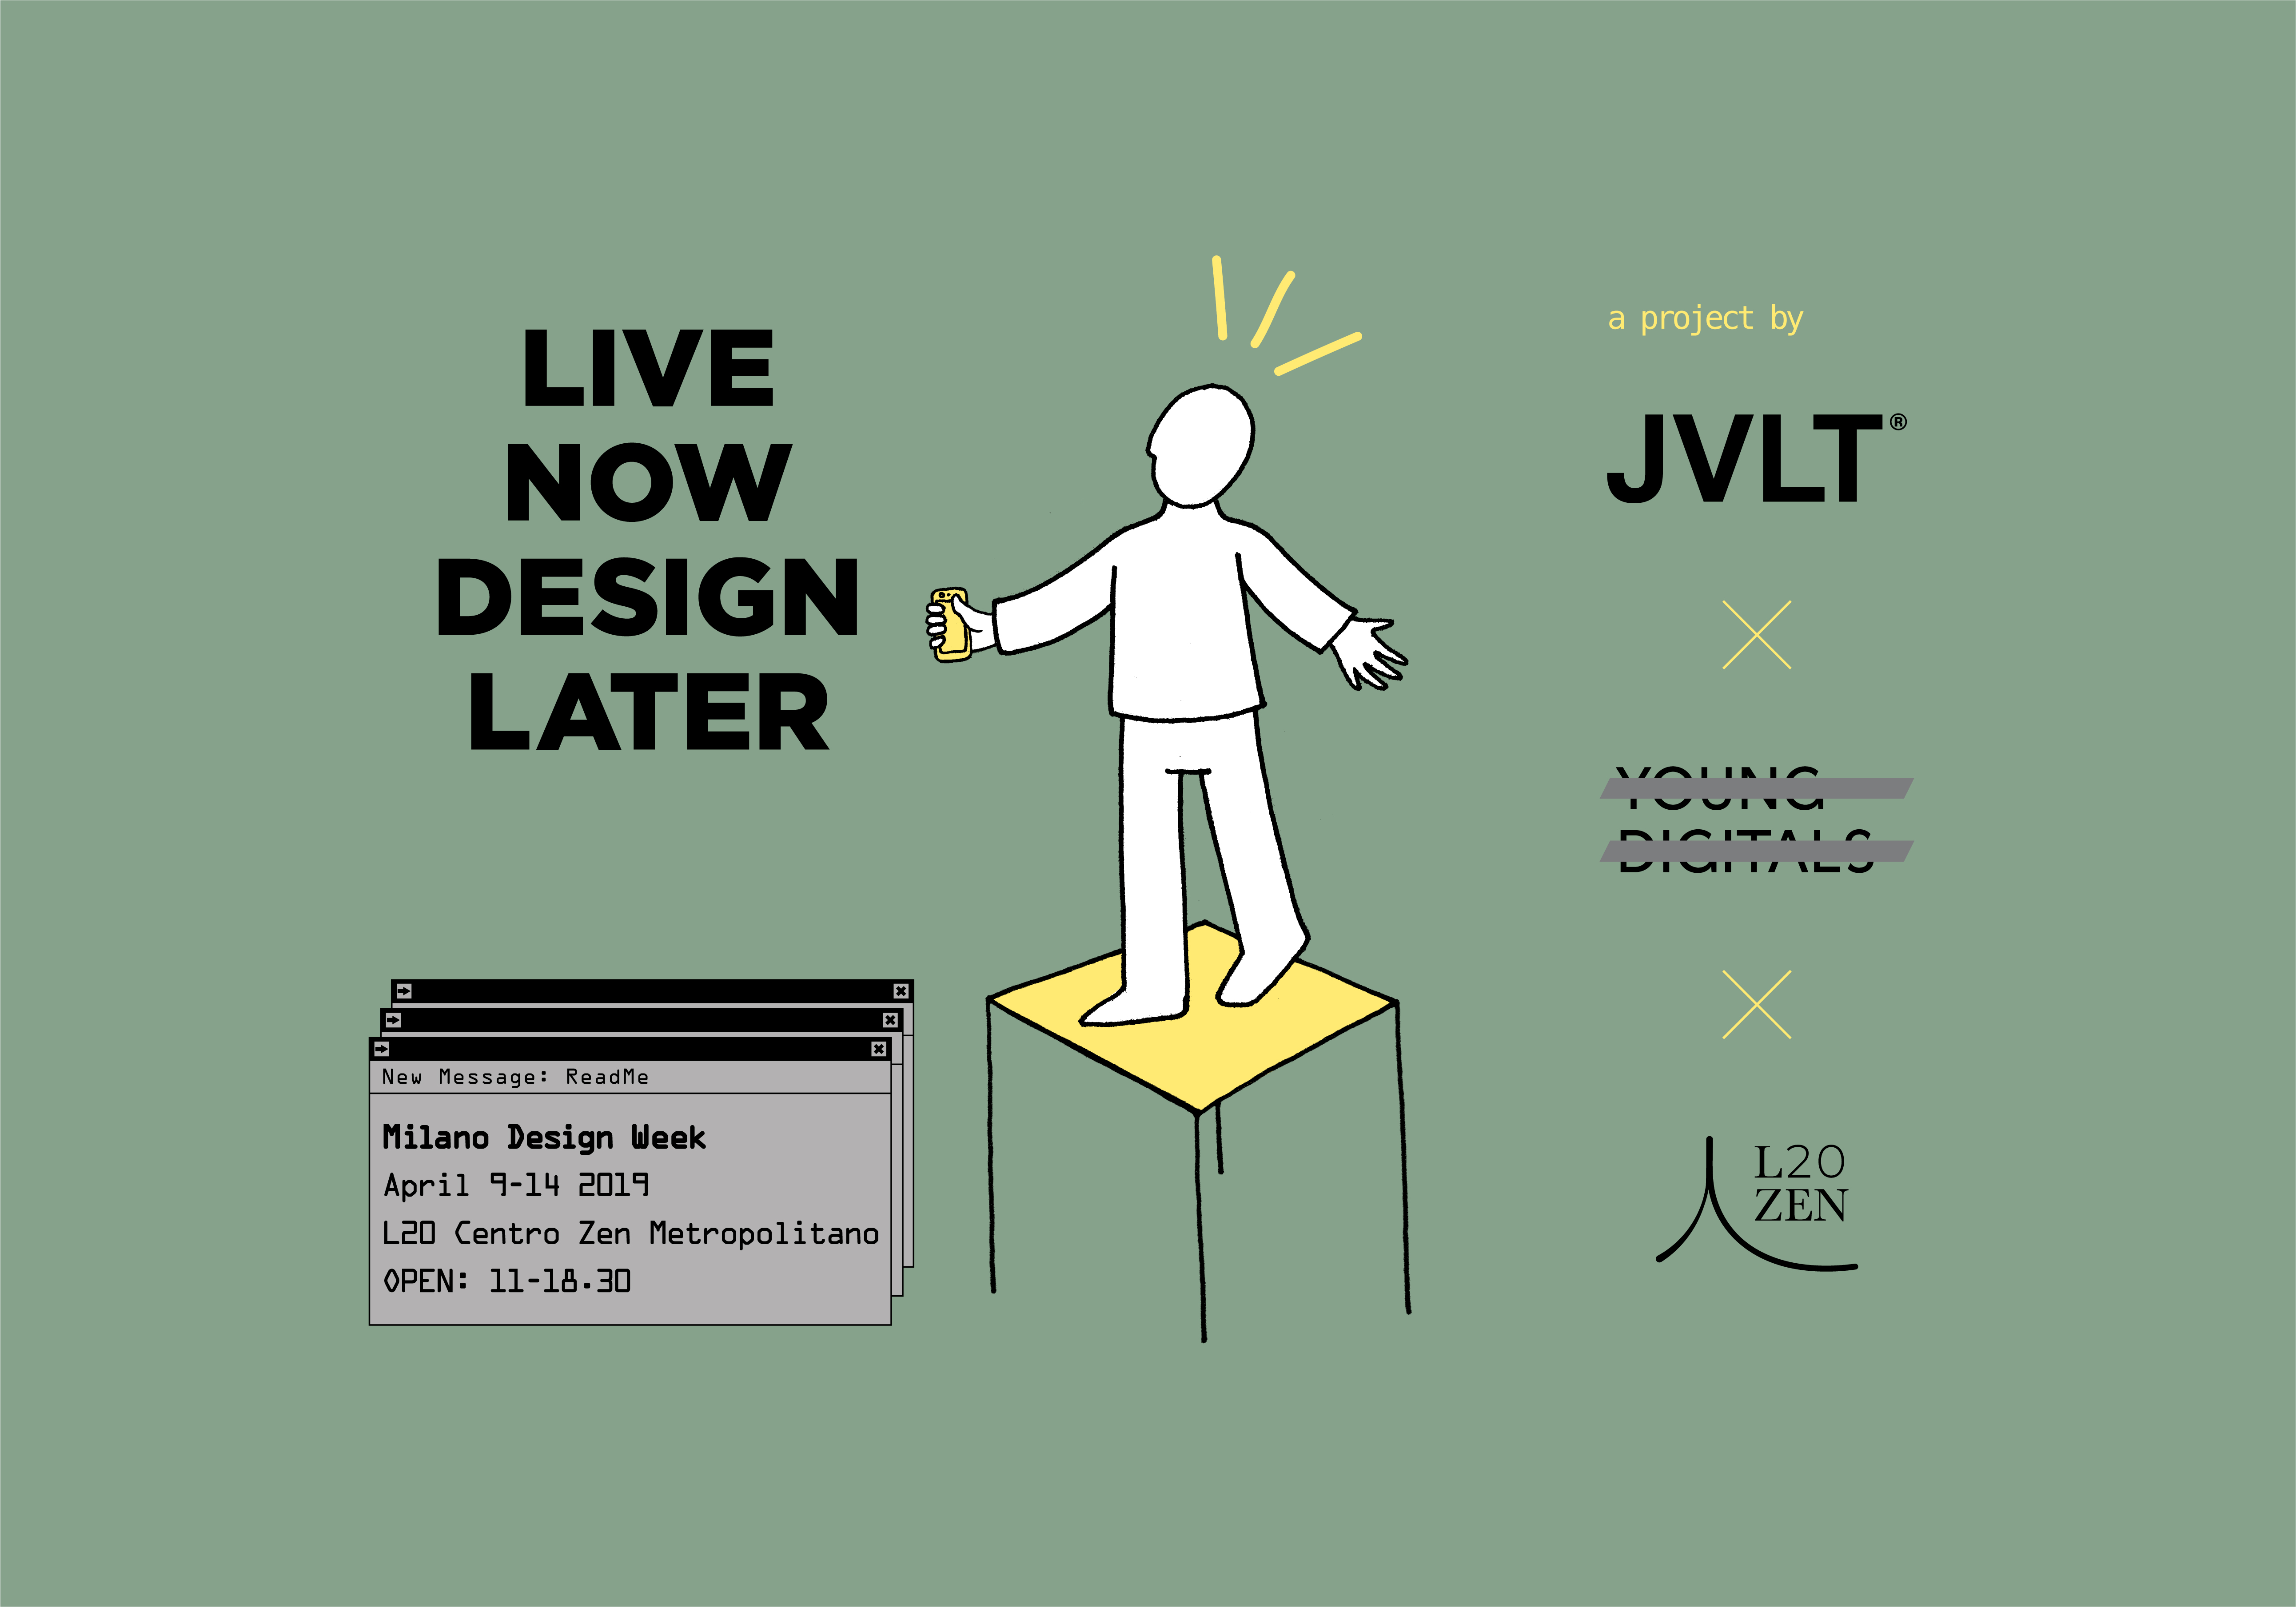 LIVE NOW DESIGN LATER